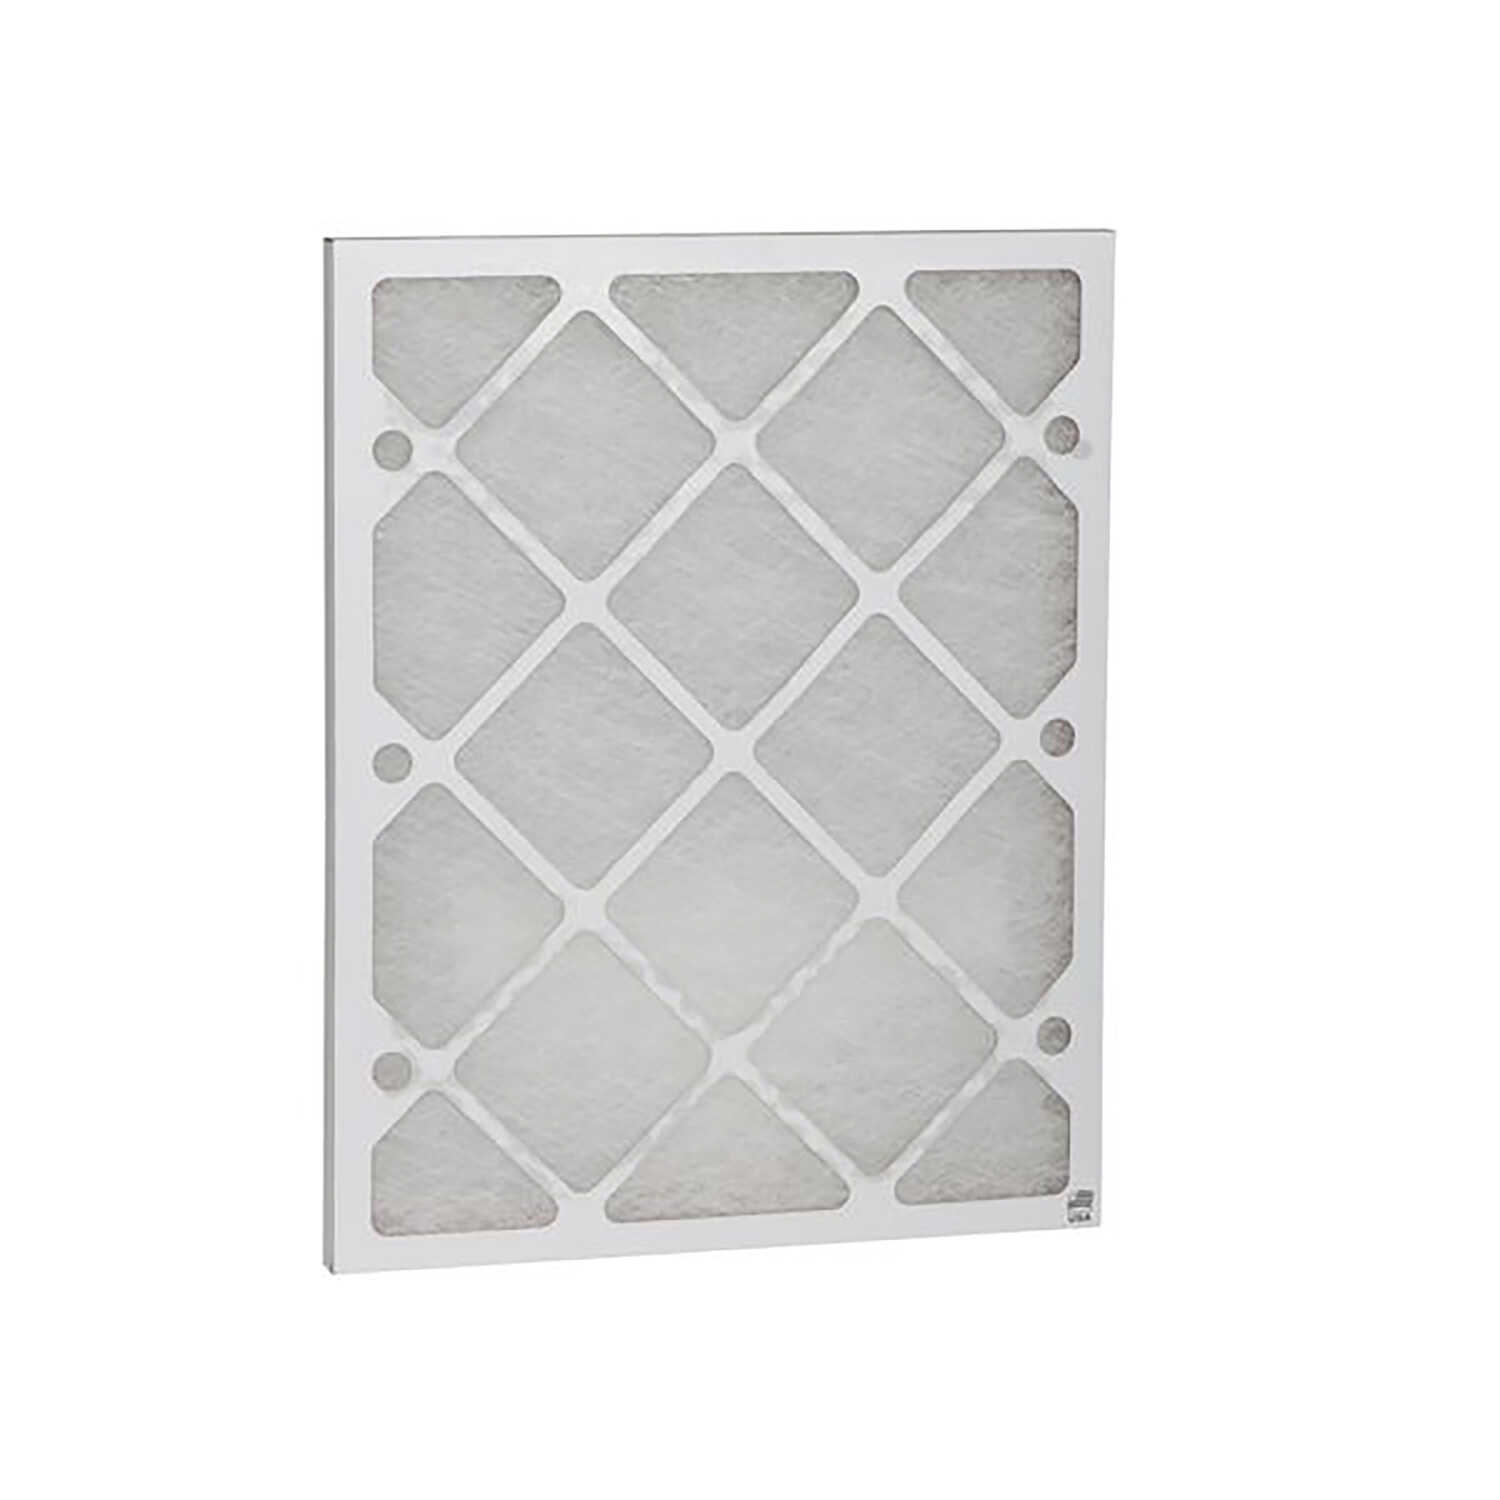 BestAir  24 in. W x 1 in. D x 12 in. H Fiberglass  7 MERV Furnace Filter